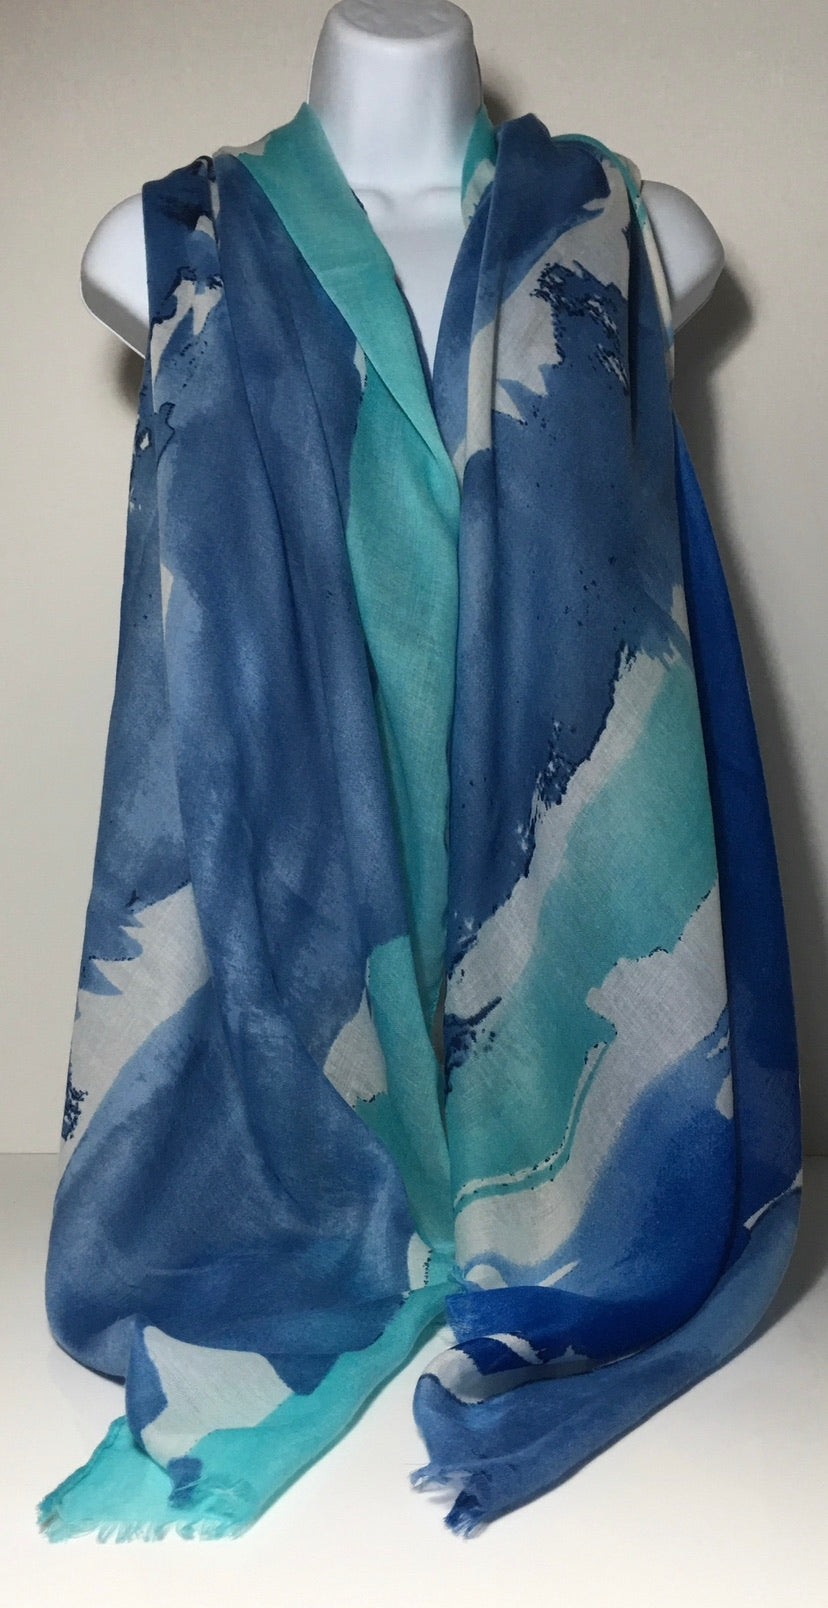 Paint splash print scarf in shades of aqua, blue and grey